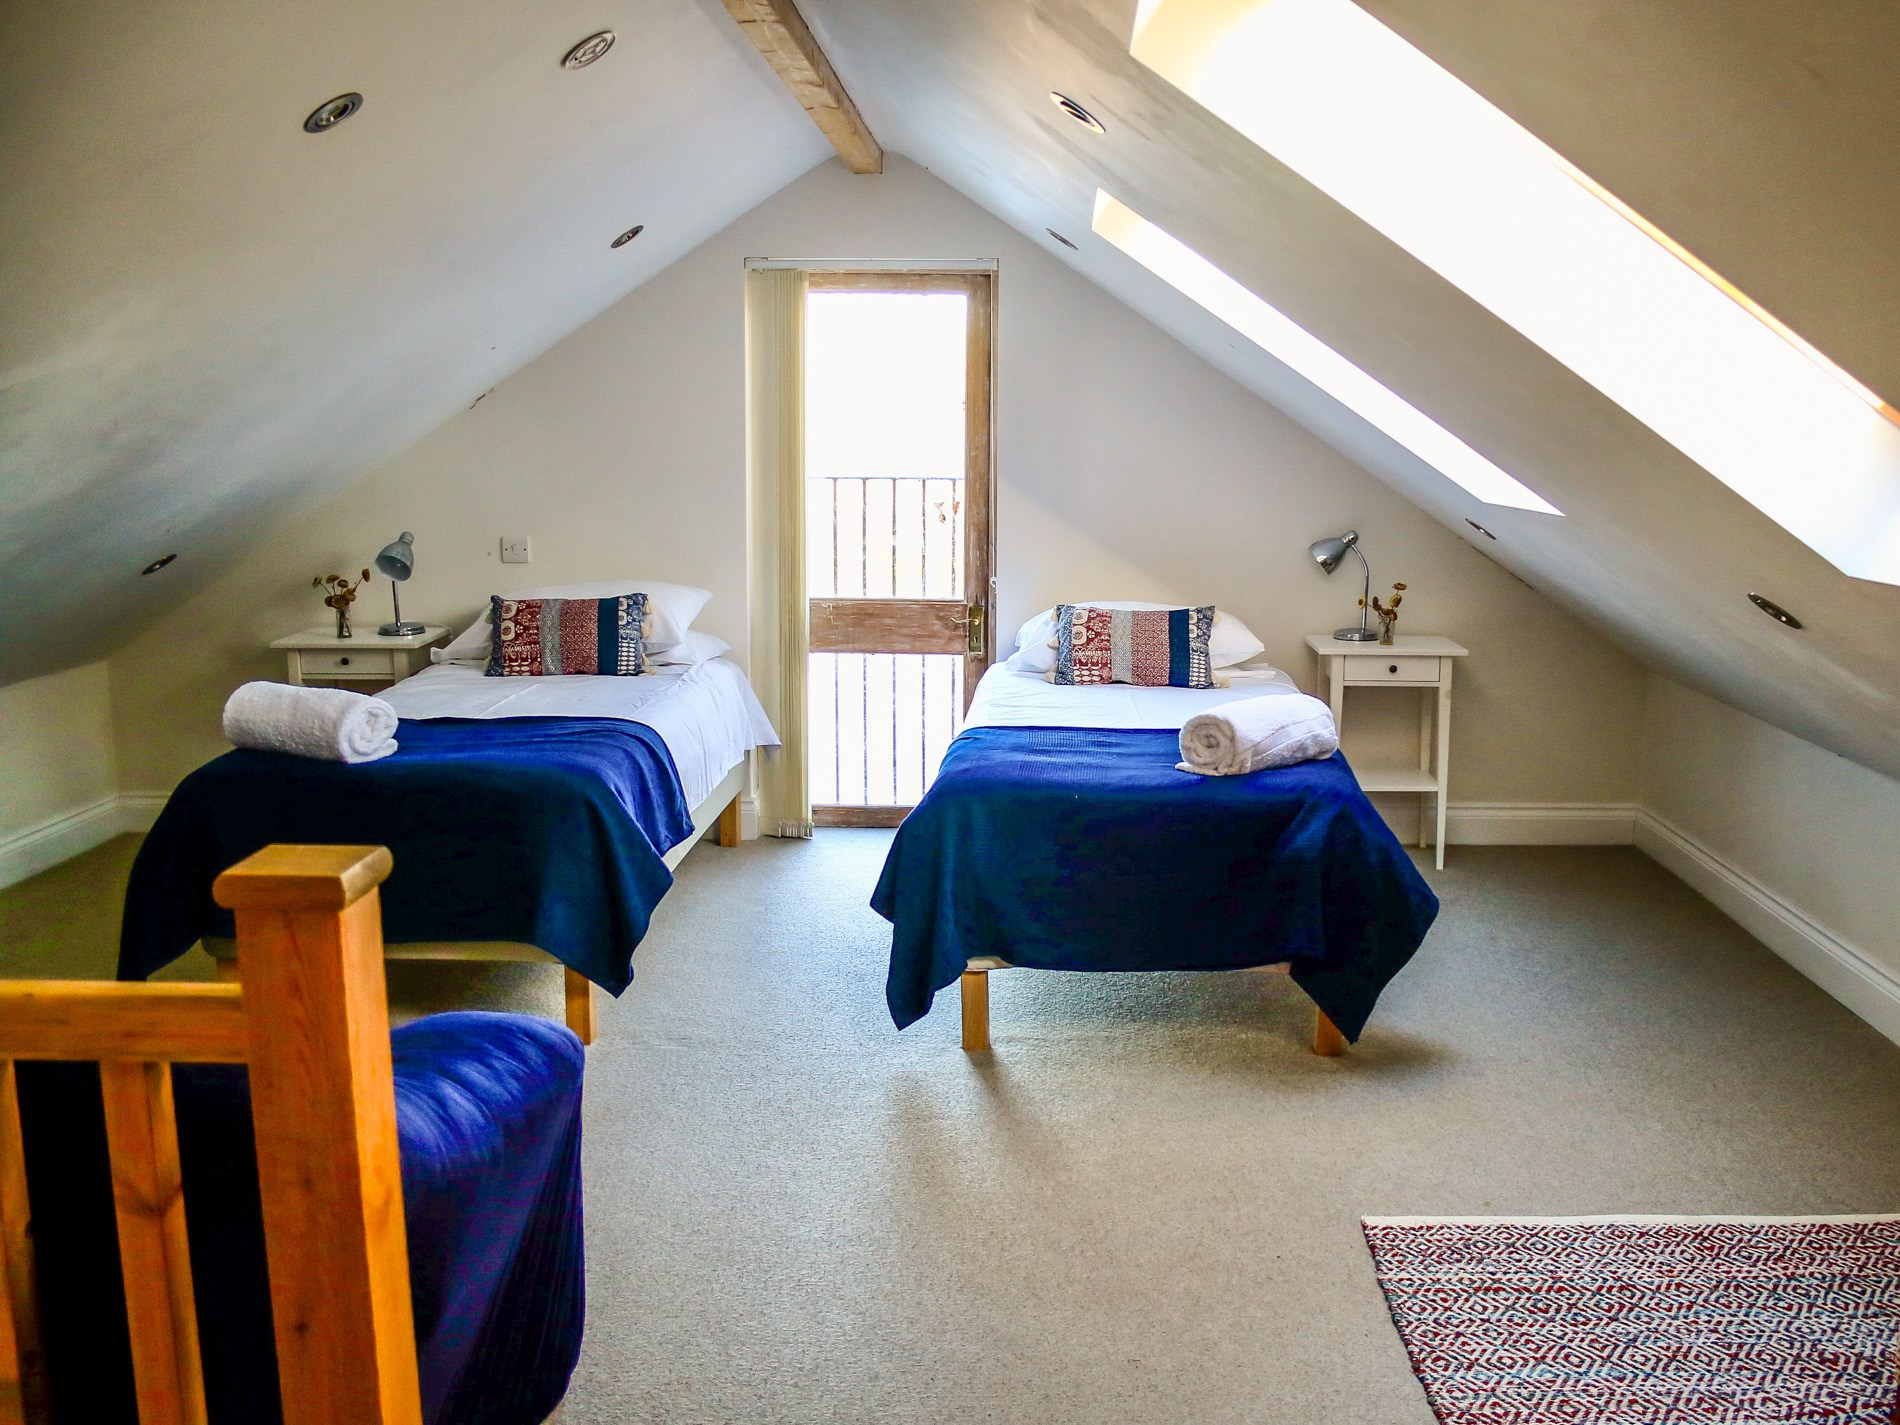 3 Bedroom Cottage in Colchester, South of England